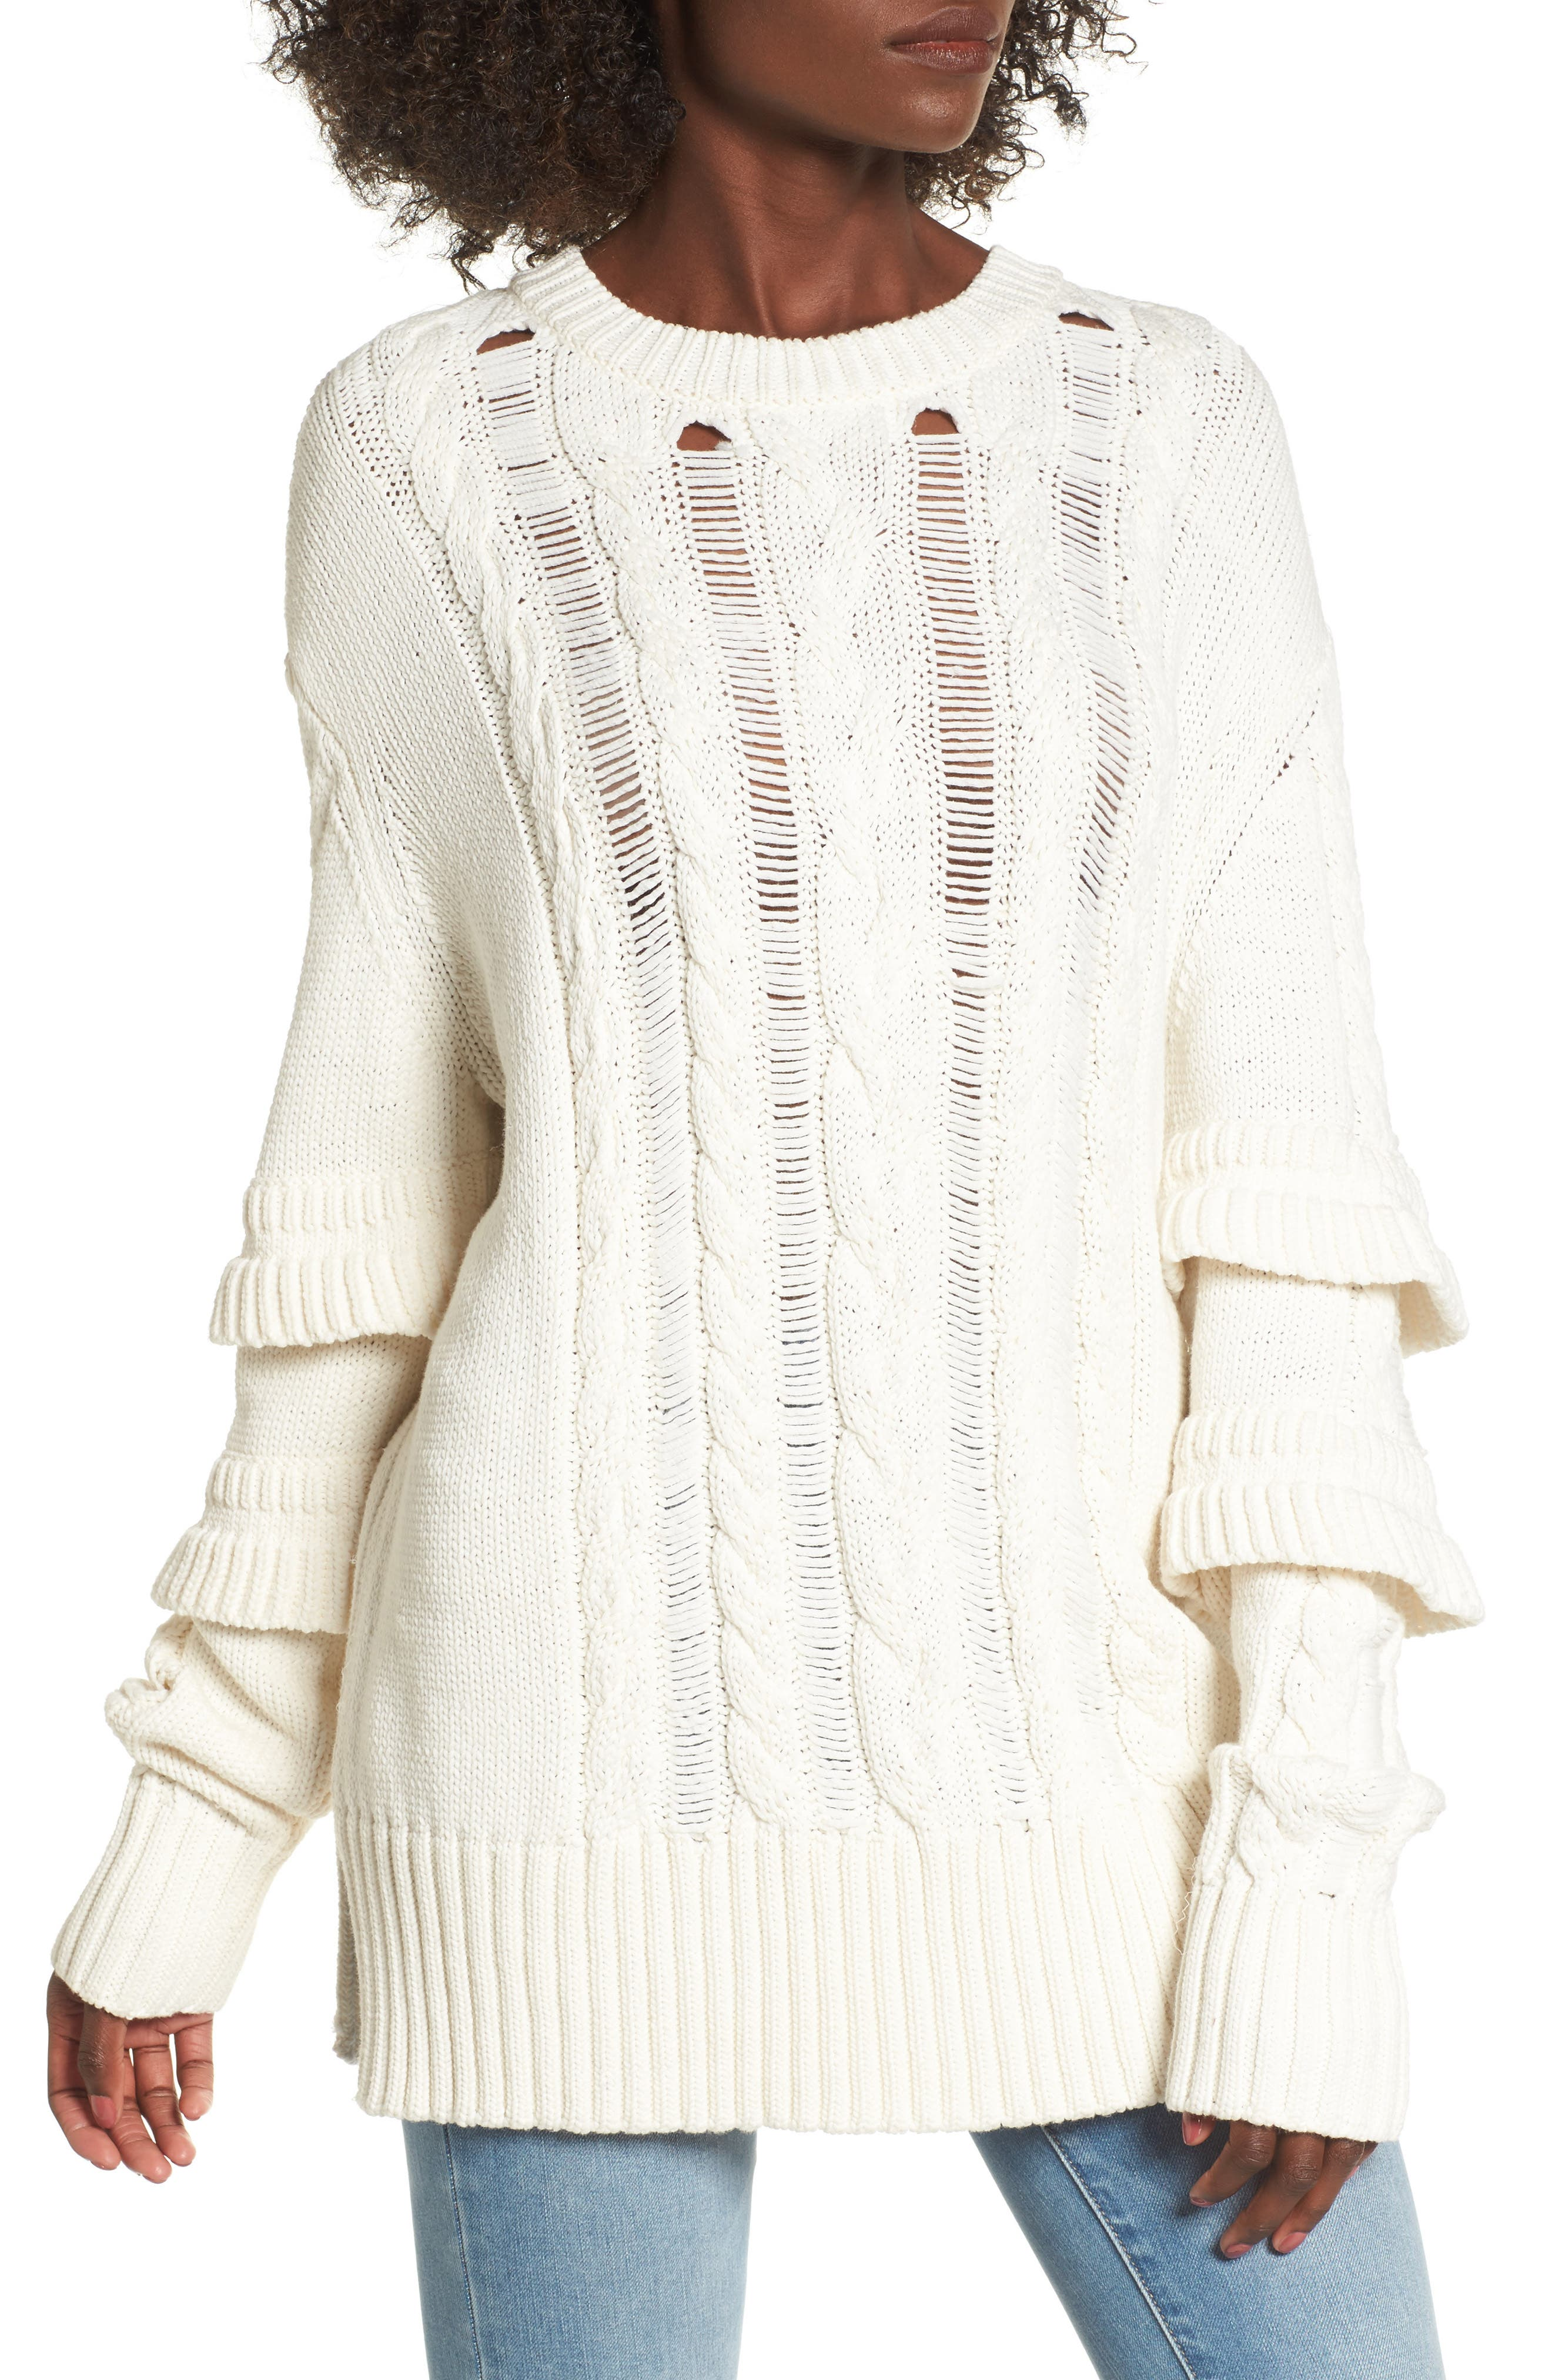 Main Image - BLANKNYC Ruffle Sleeve Cable Knit Sweater